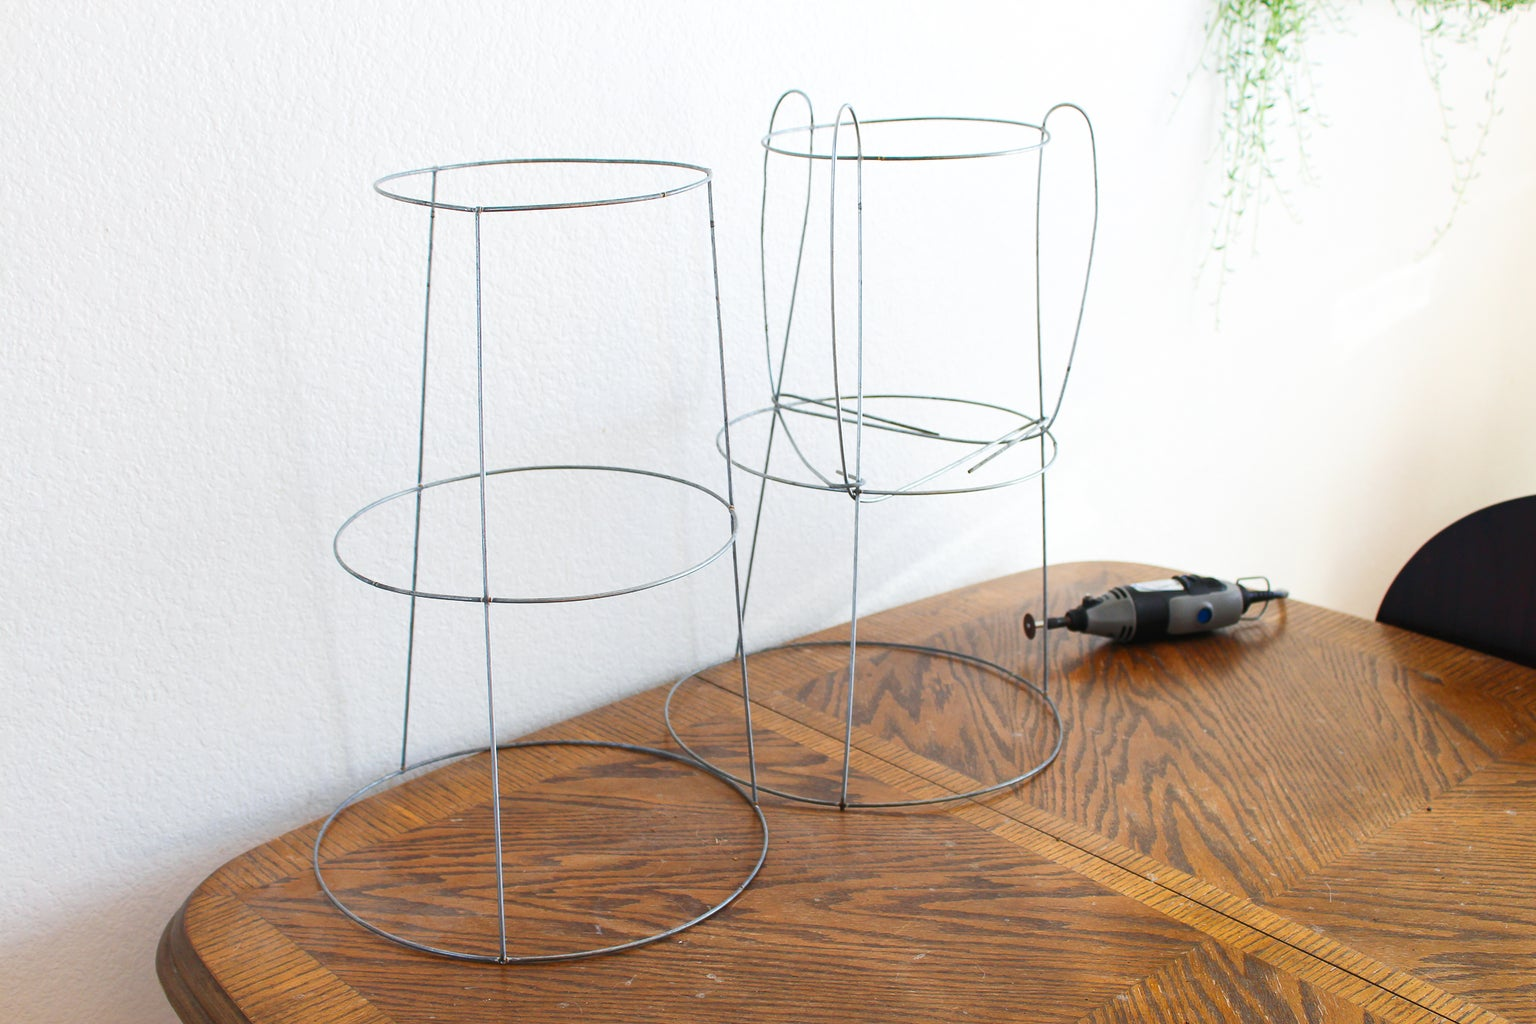 Enjoy Your New Plant Stands!